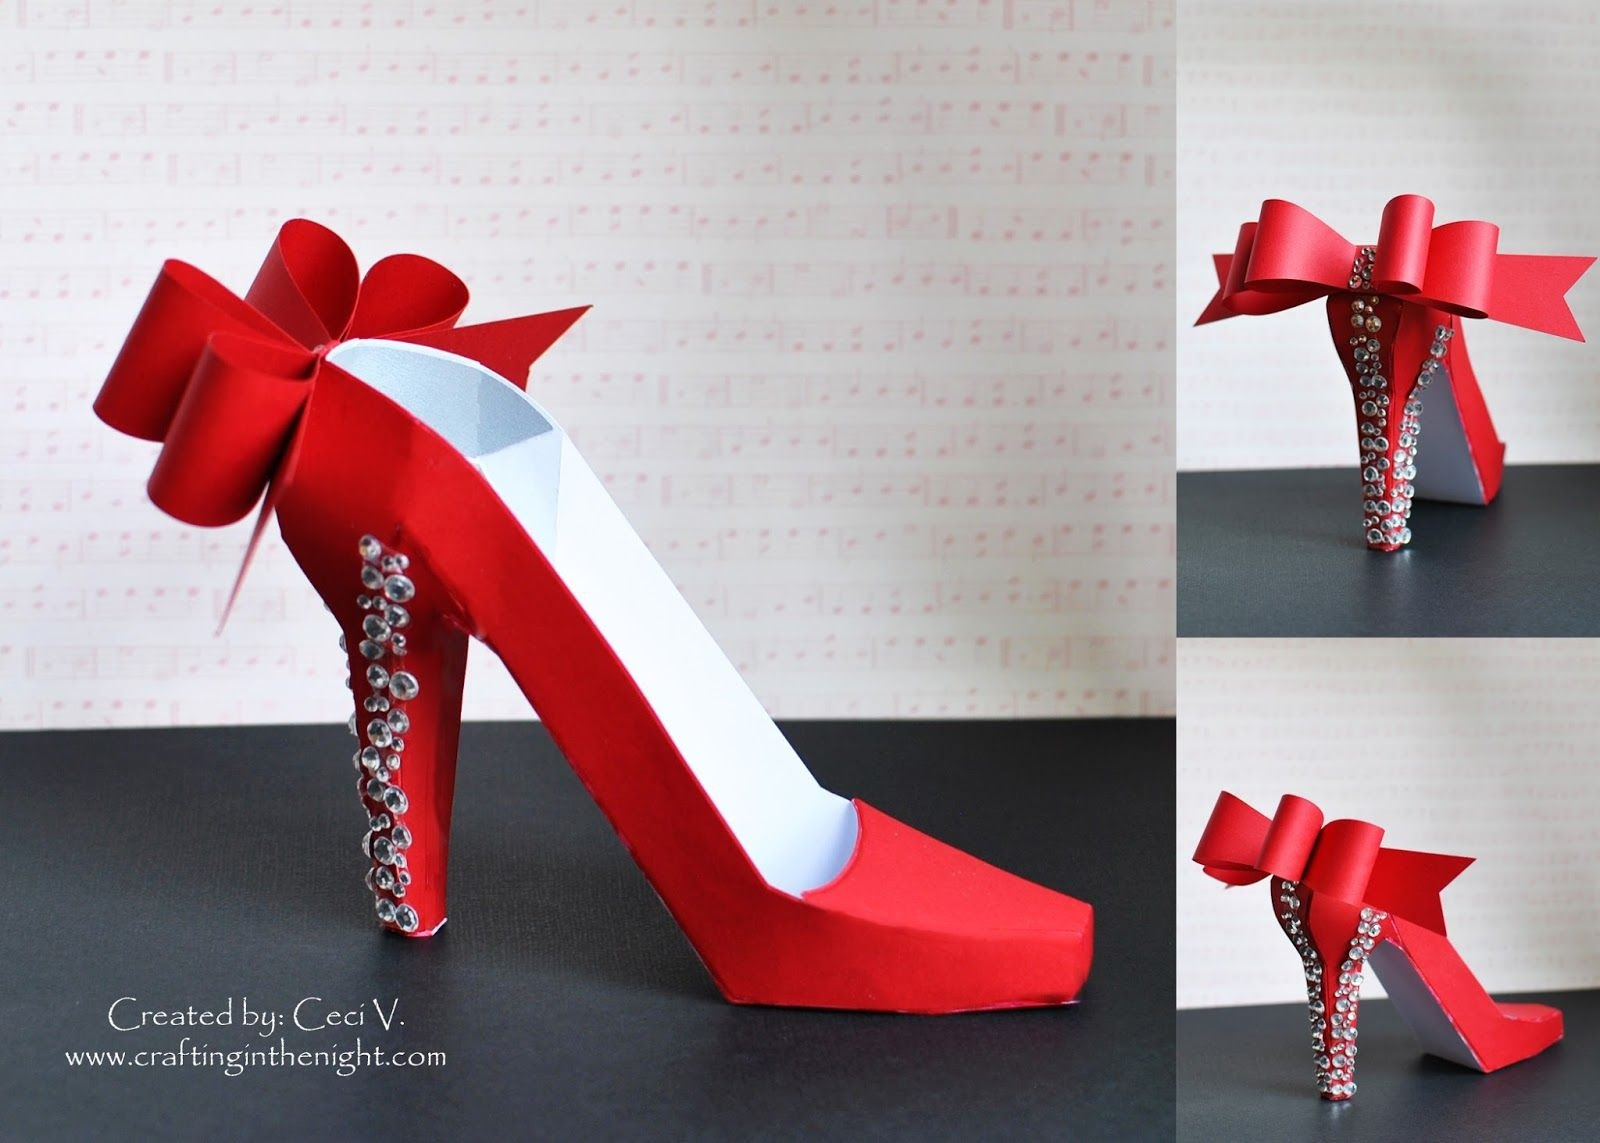 Crafting In The Night D High Heel Shoe  Svgcuts  D Projects With High Heel Shoe Template For Card